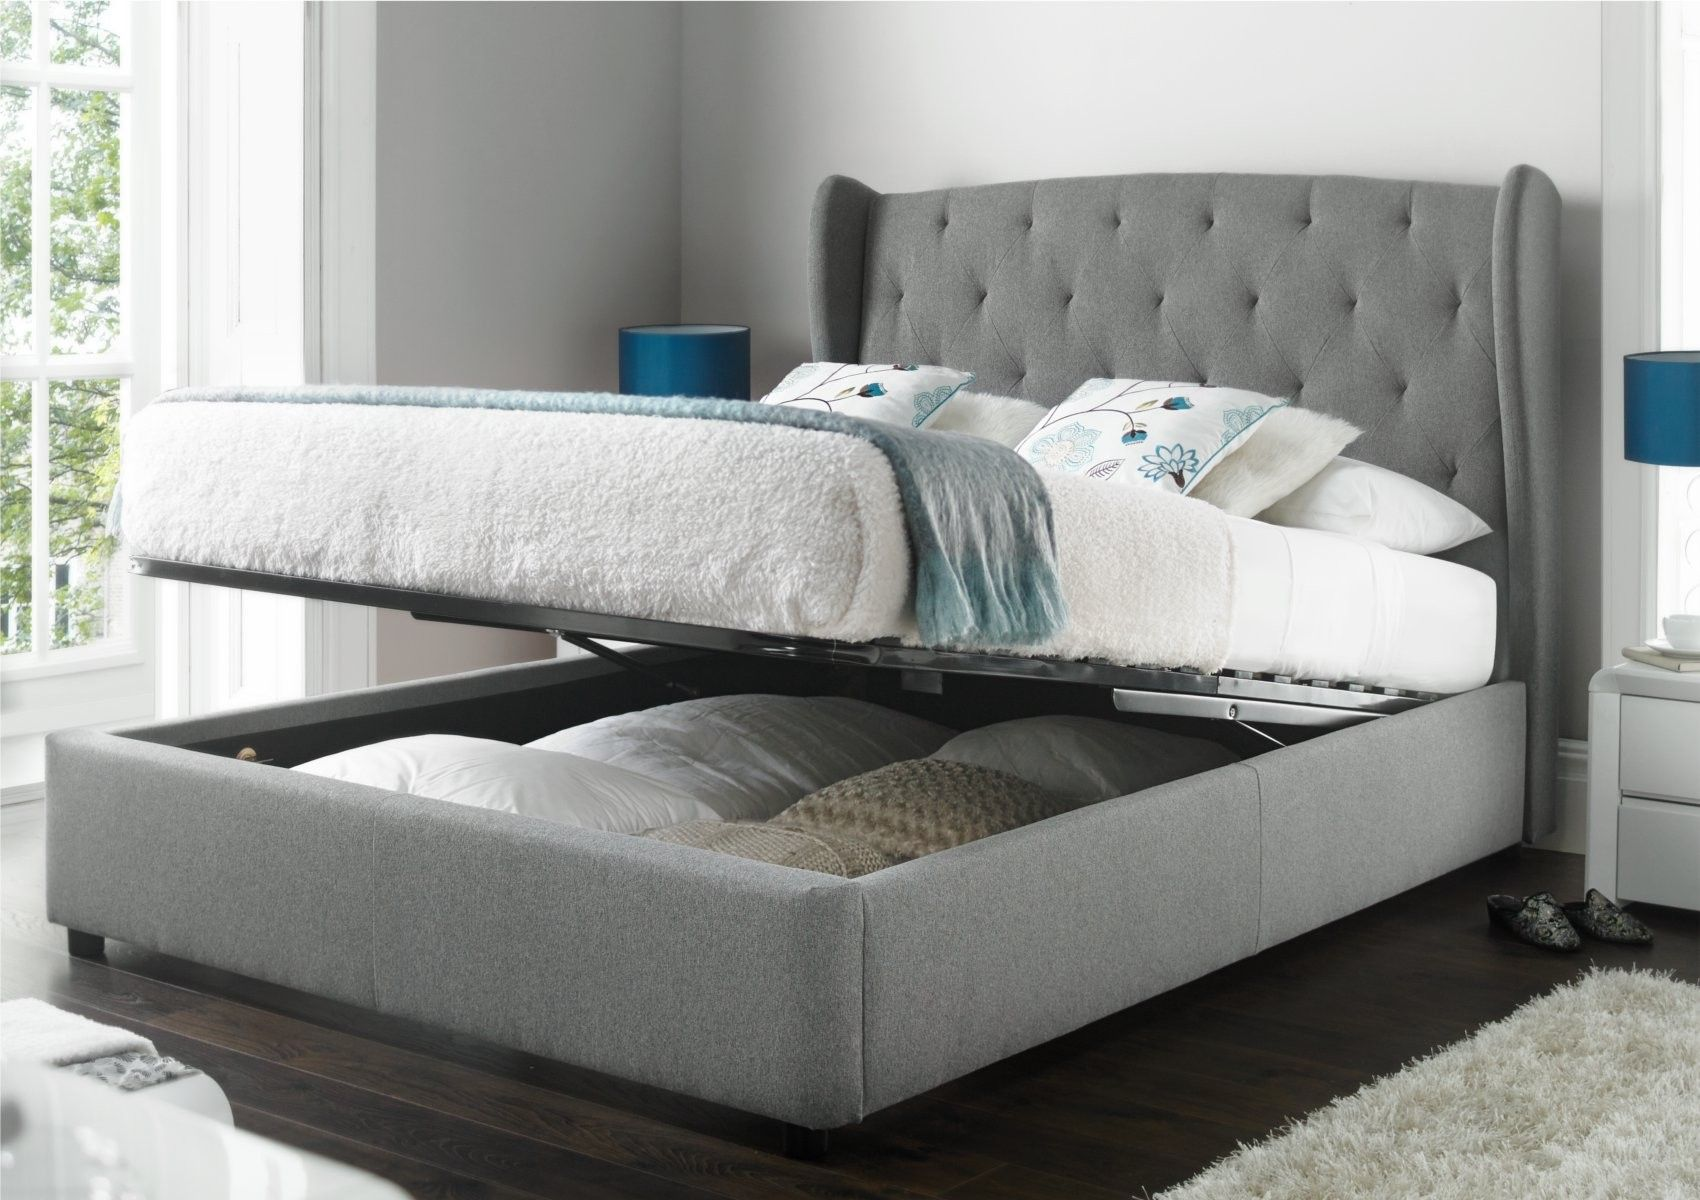 Upholstered Wing Backed Beds Are One Of The Latest Trends To Hit